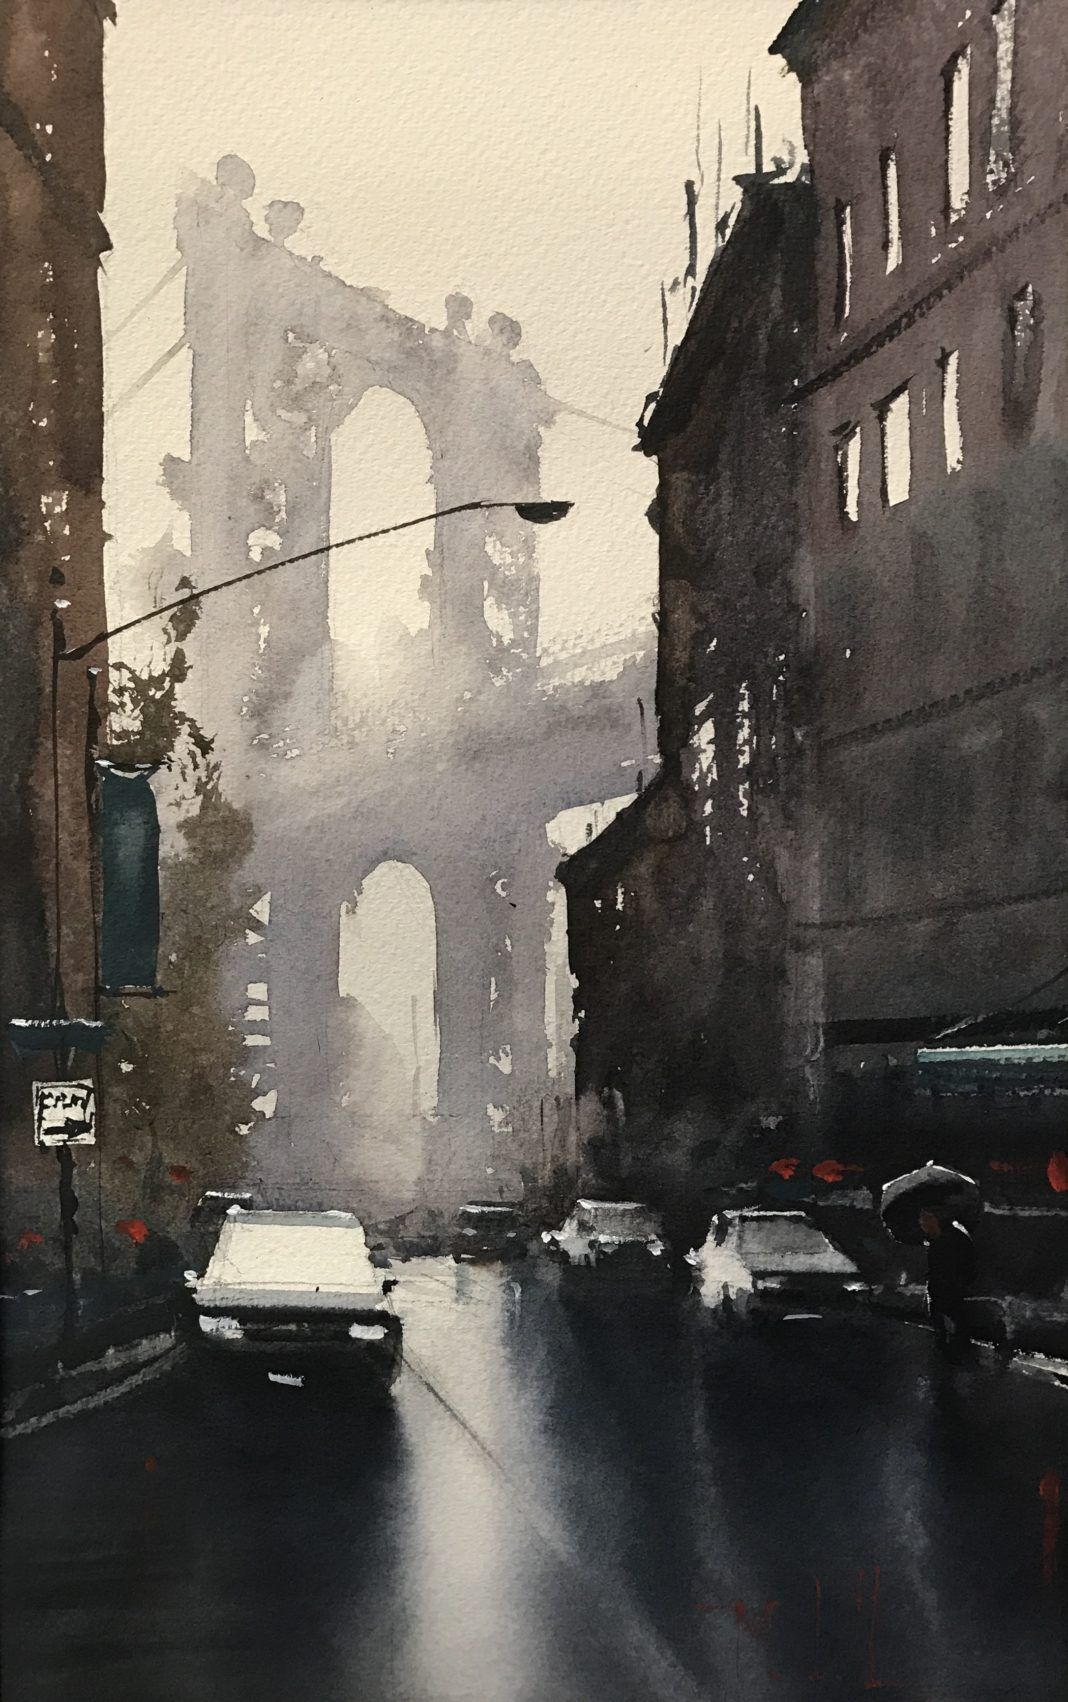 How Watercolor Can Make You Lose Friends Art De Paysage Urbain